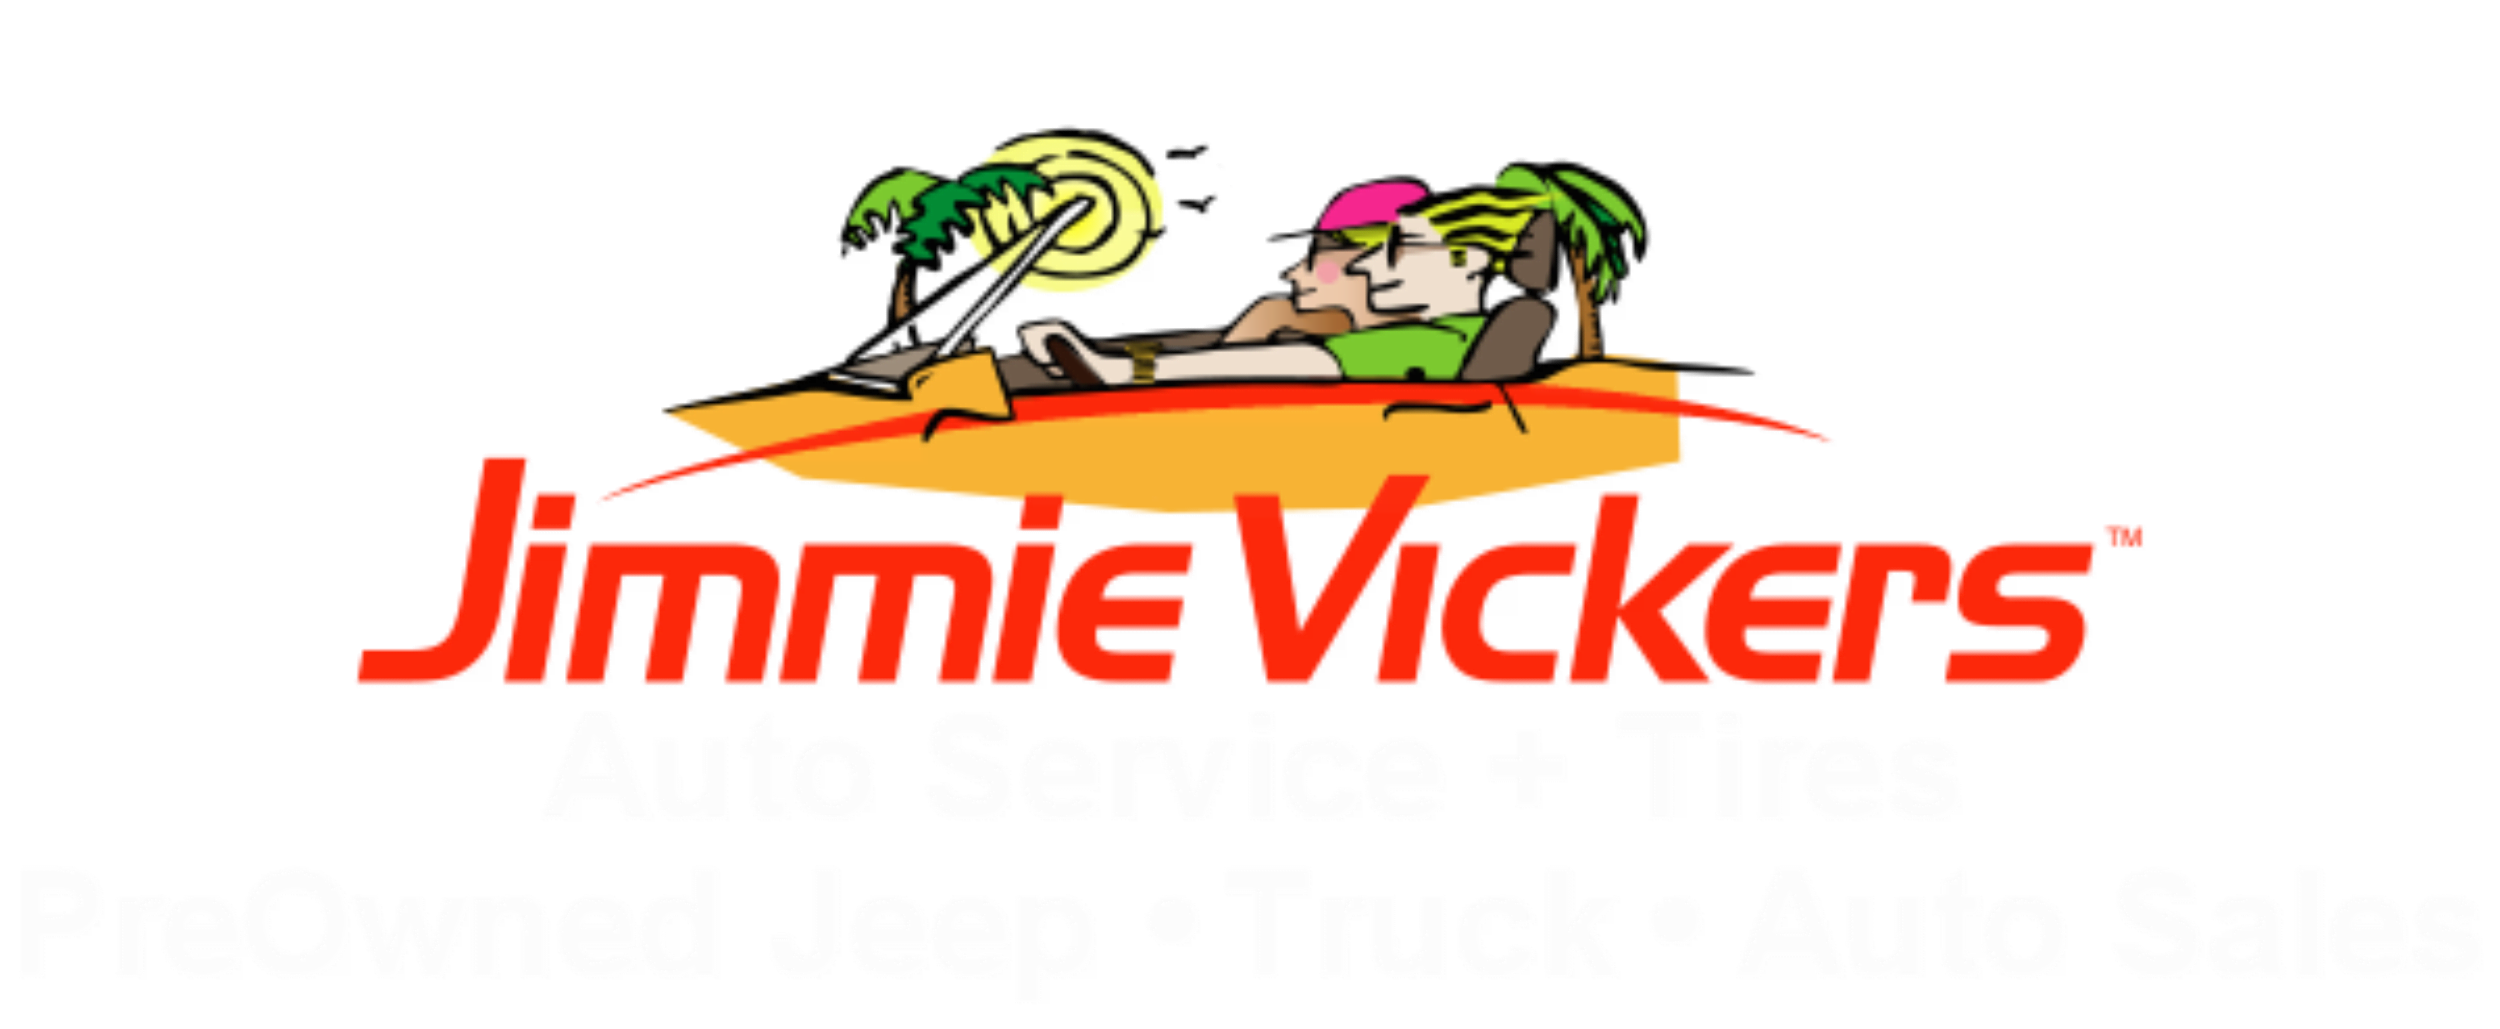 Attractive Jimmie Vickers PreOwned Jeep Store In Merritt Island, FL